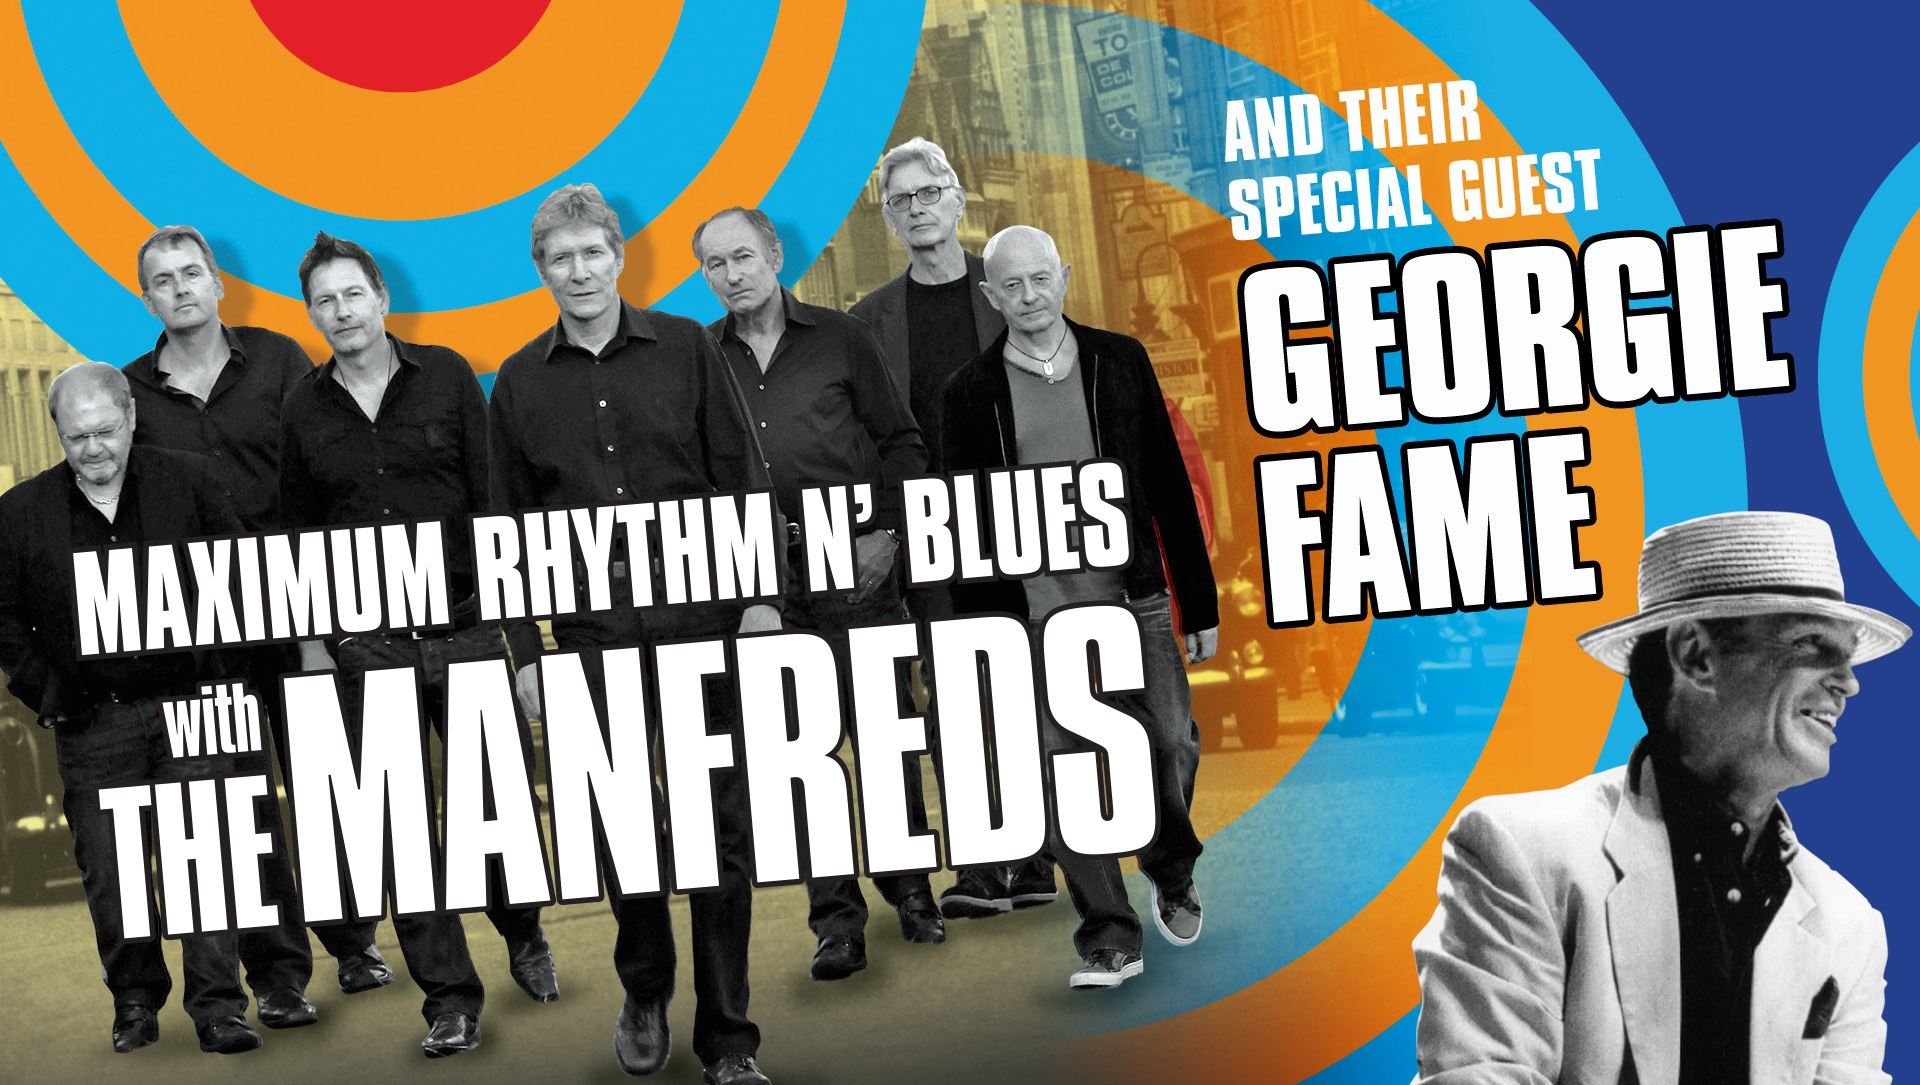 Maximum Rhythm and Blues with The Manfreds and Georgie Fame